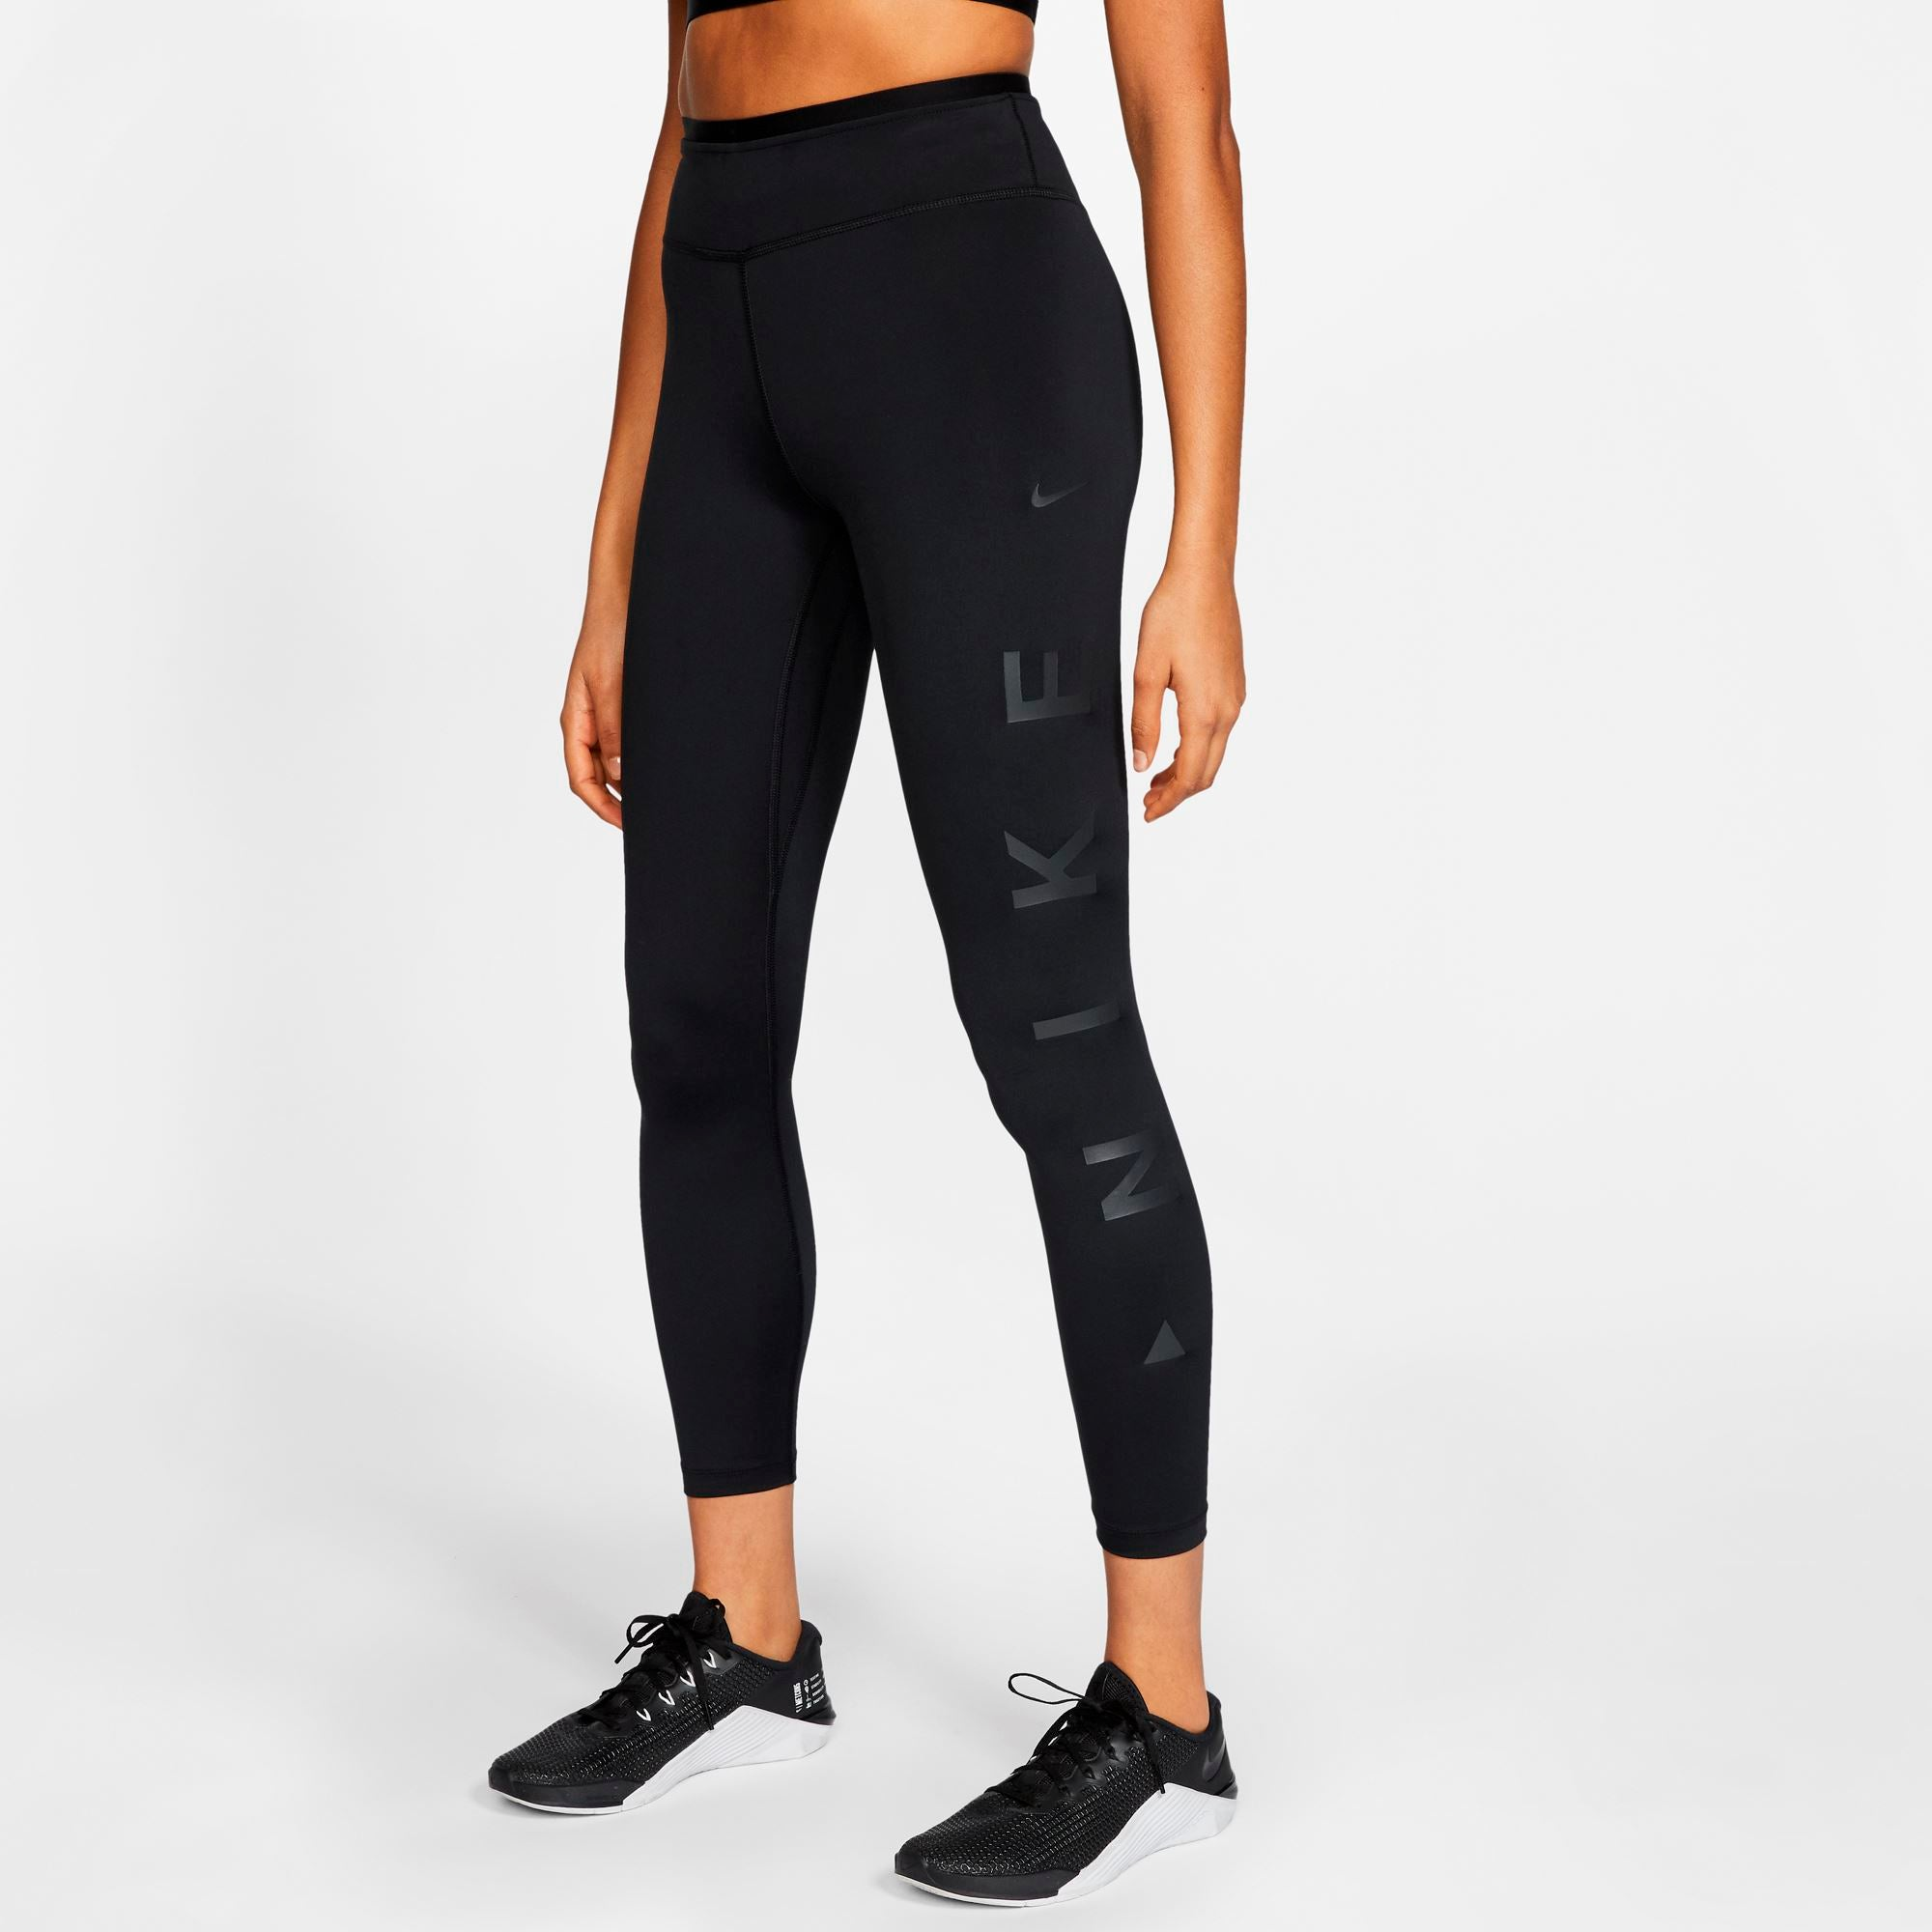 Nike Womens One Icon Clash Mid-Rise 7/8 Tights - Black/Dark Smoke Grey SP-ApparelTights-Women Nike